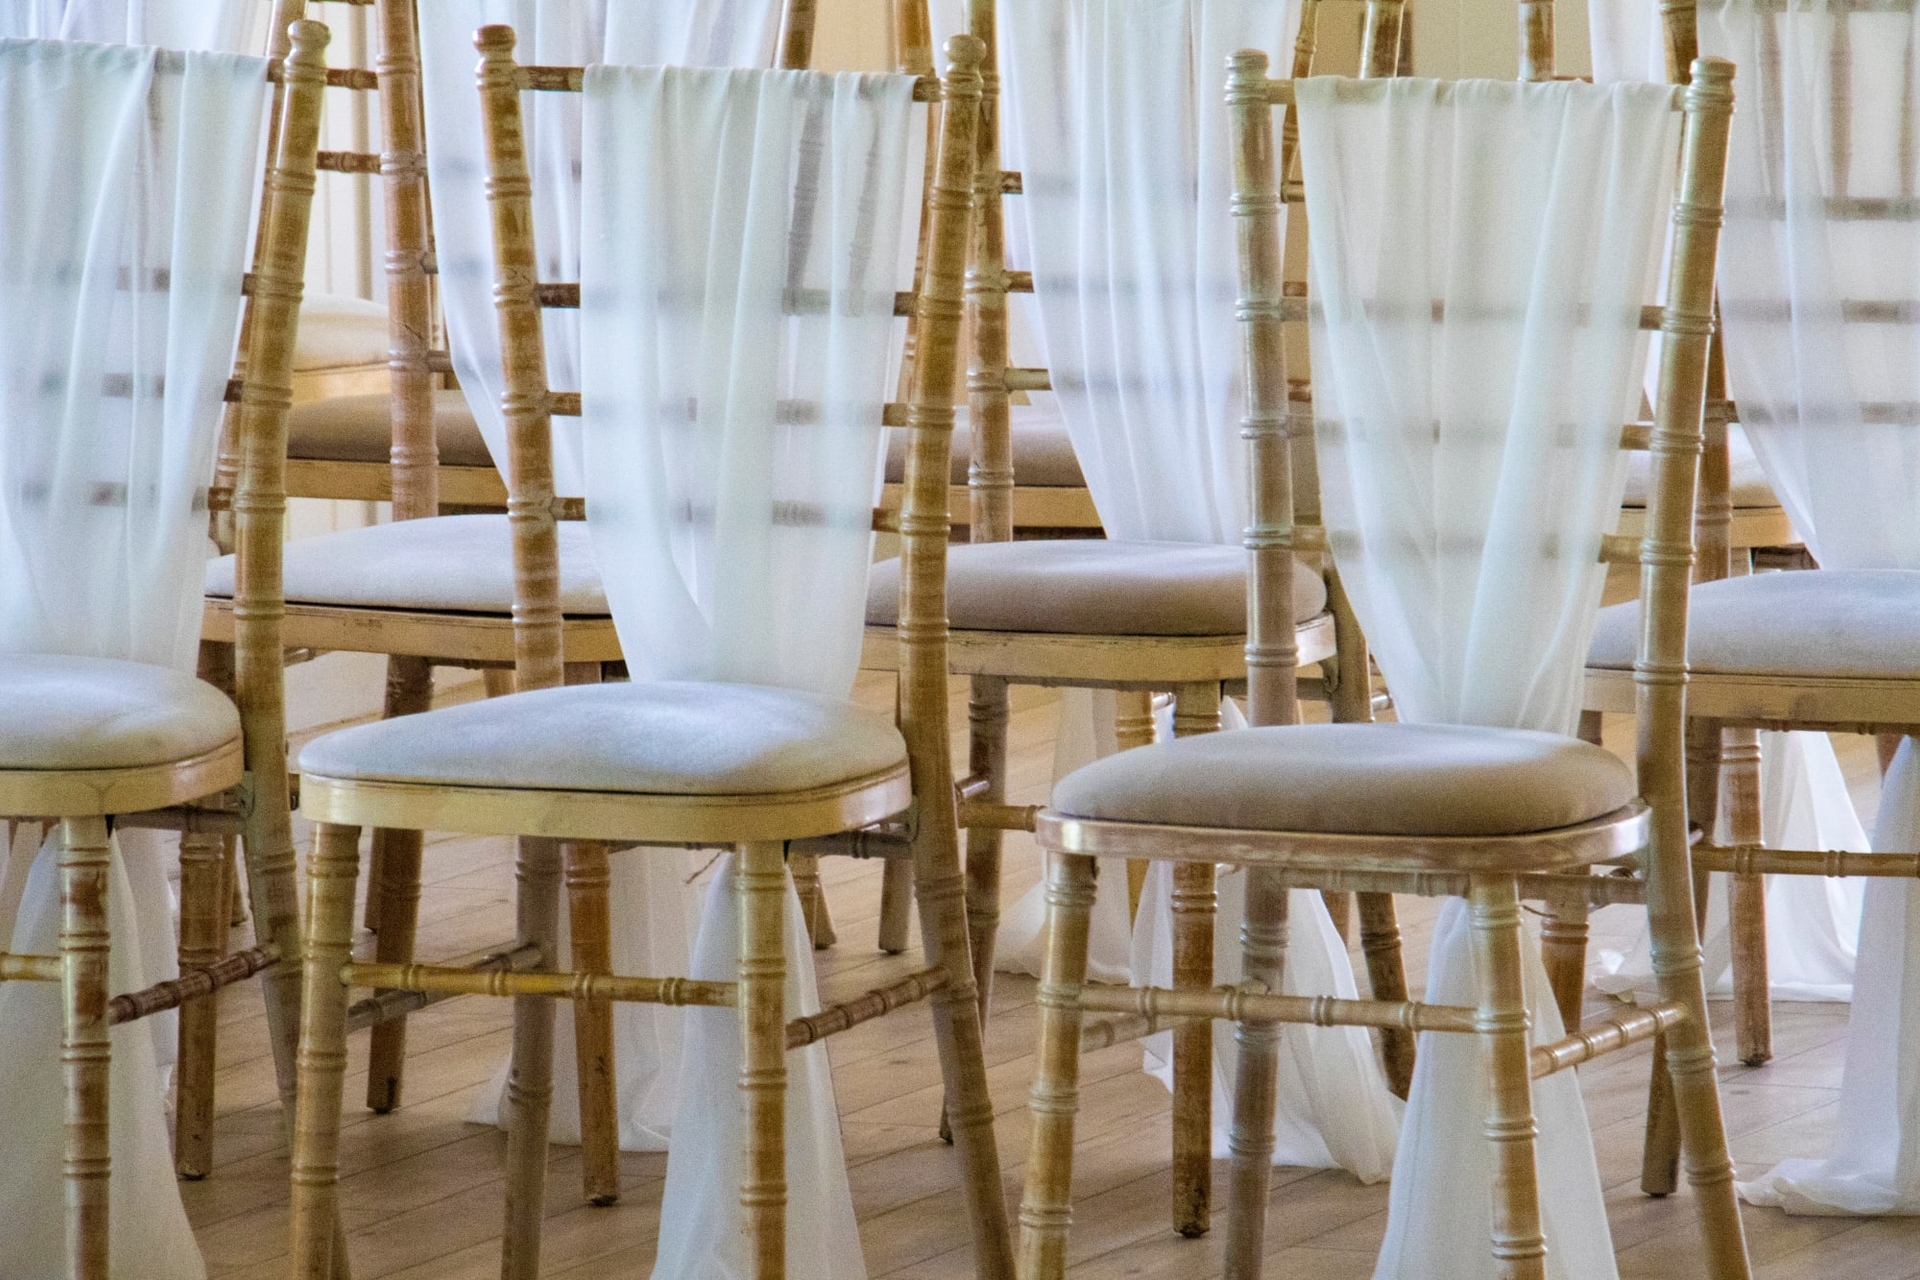 lime-washed chivari chairs in rows set out for a wedding reception